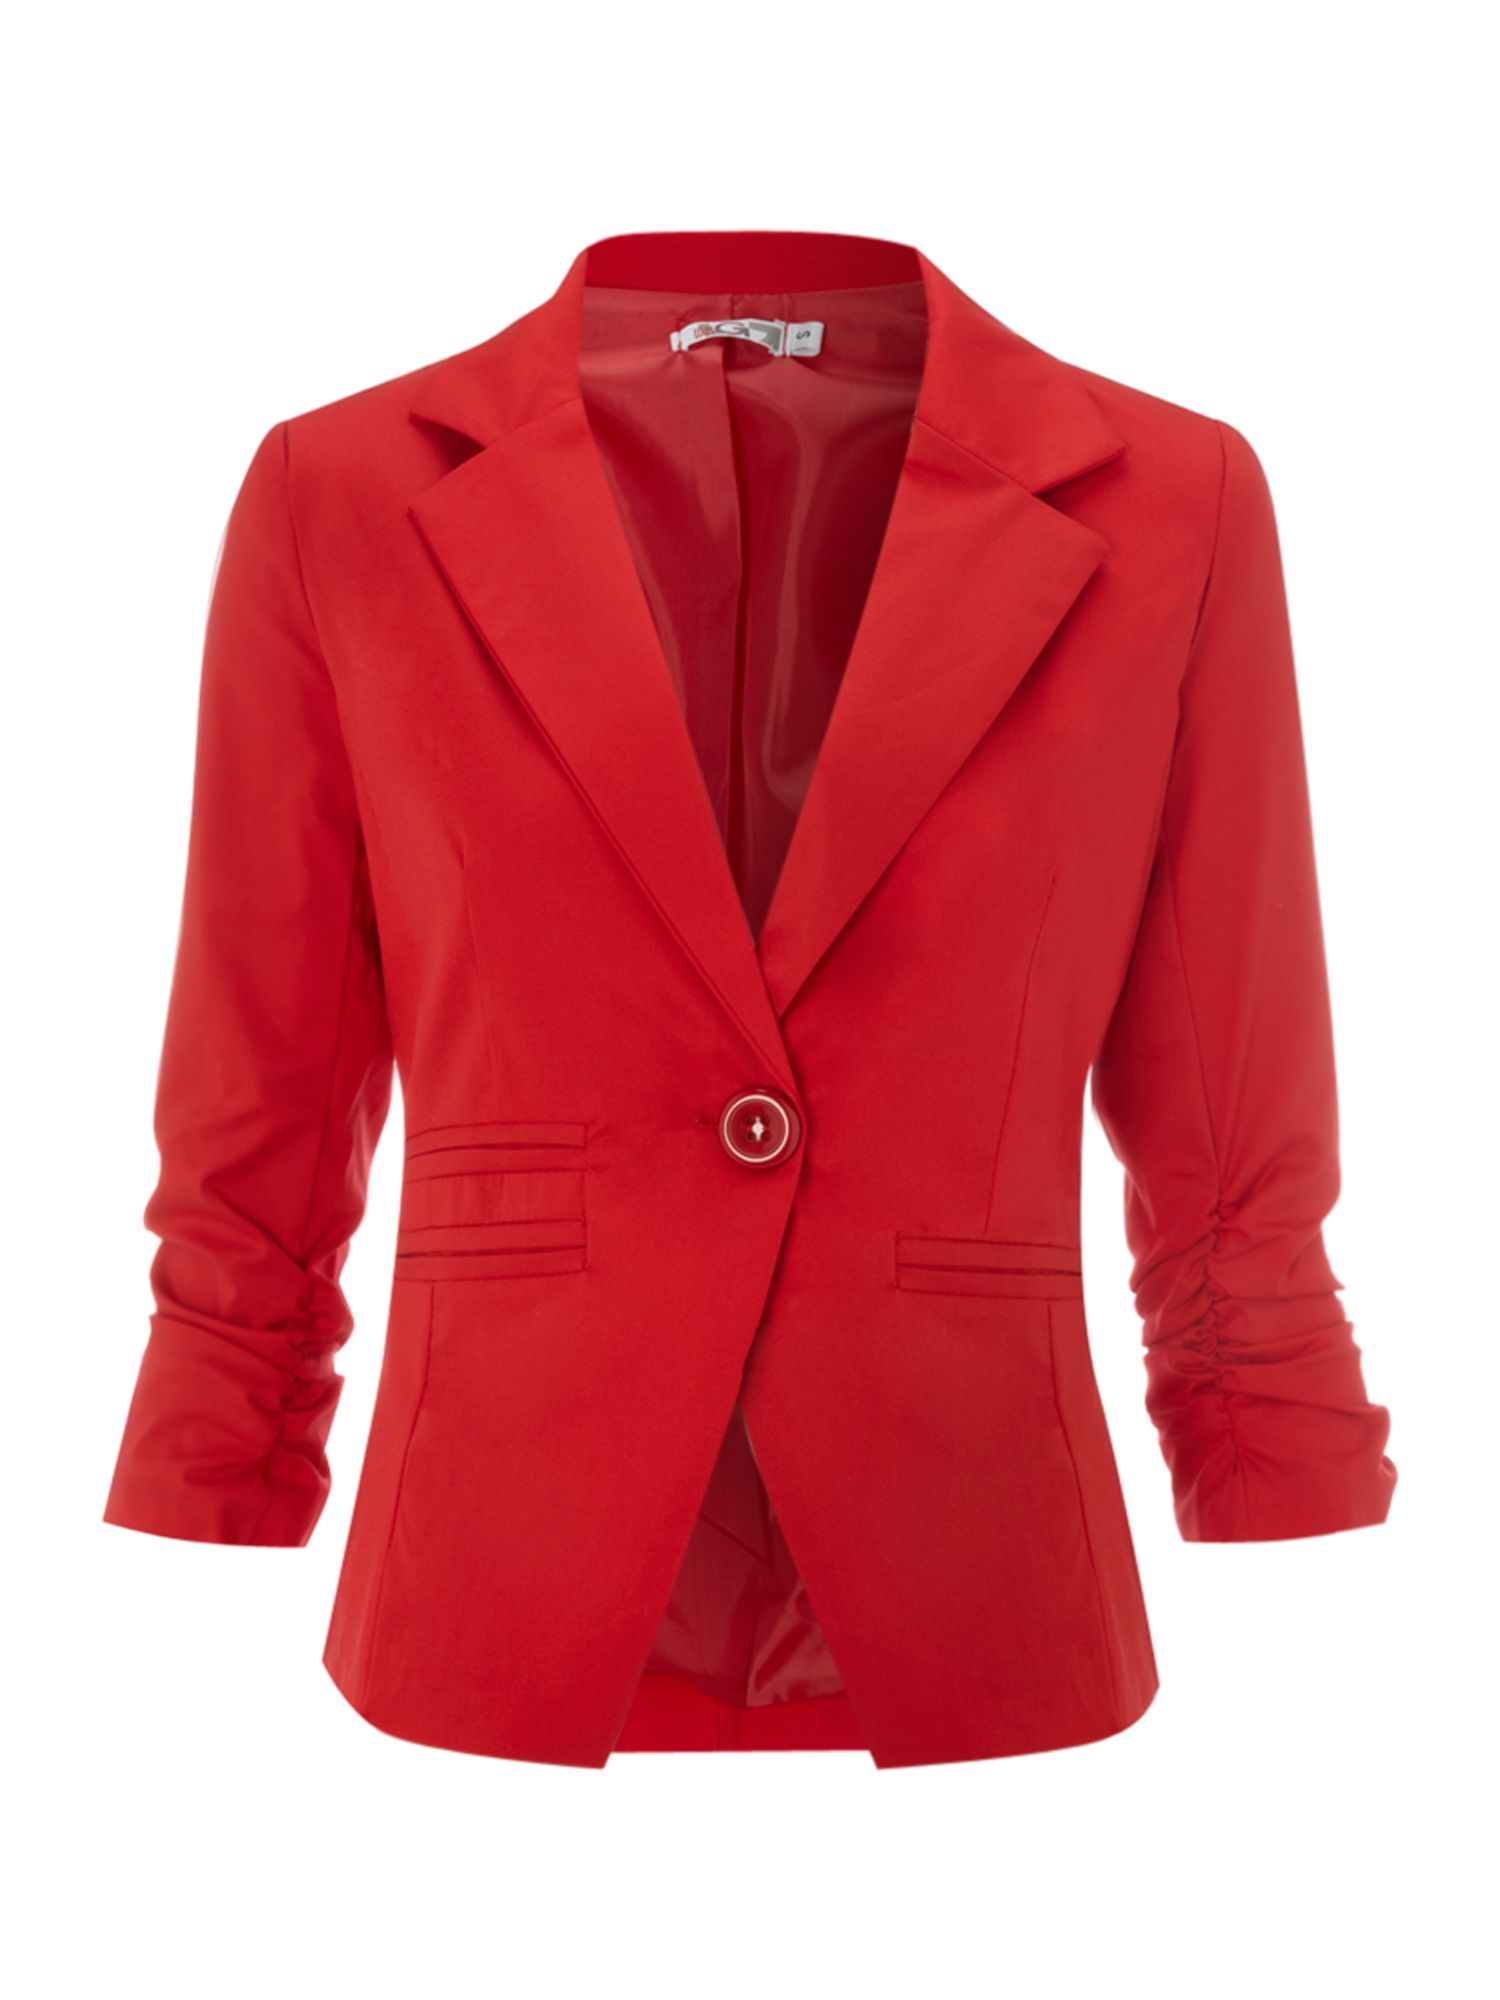 Jacket with 3/4 ruched sleeve